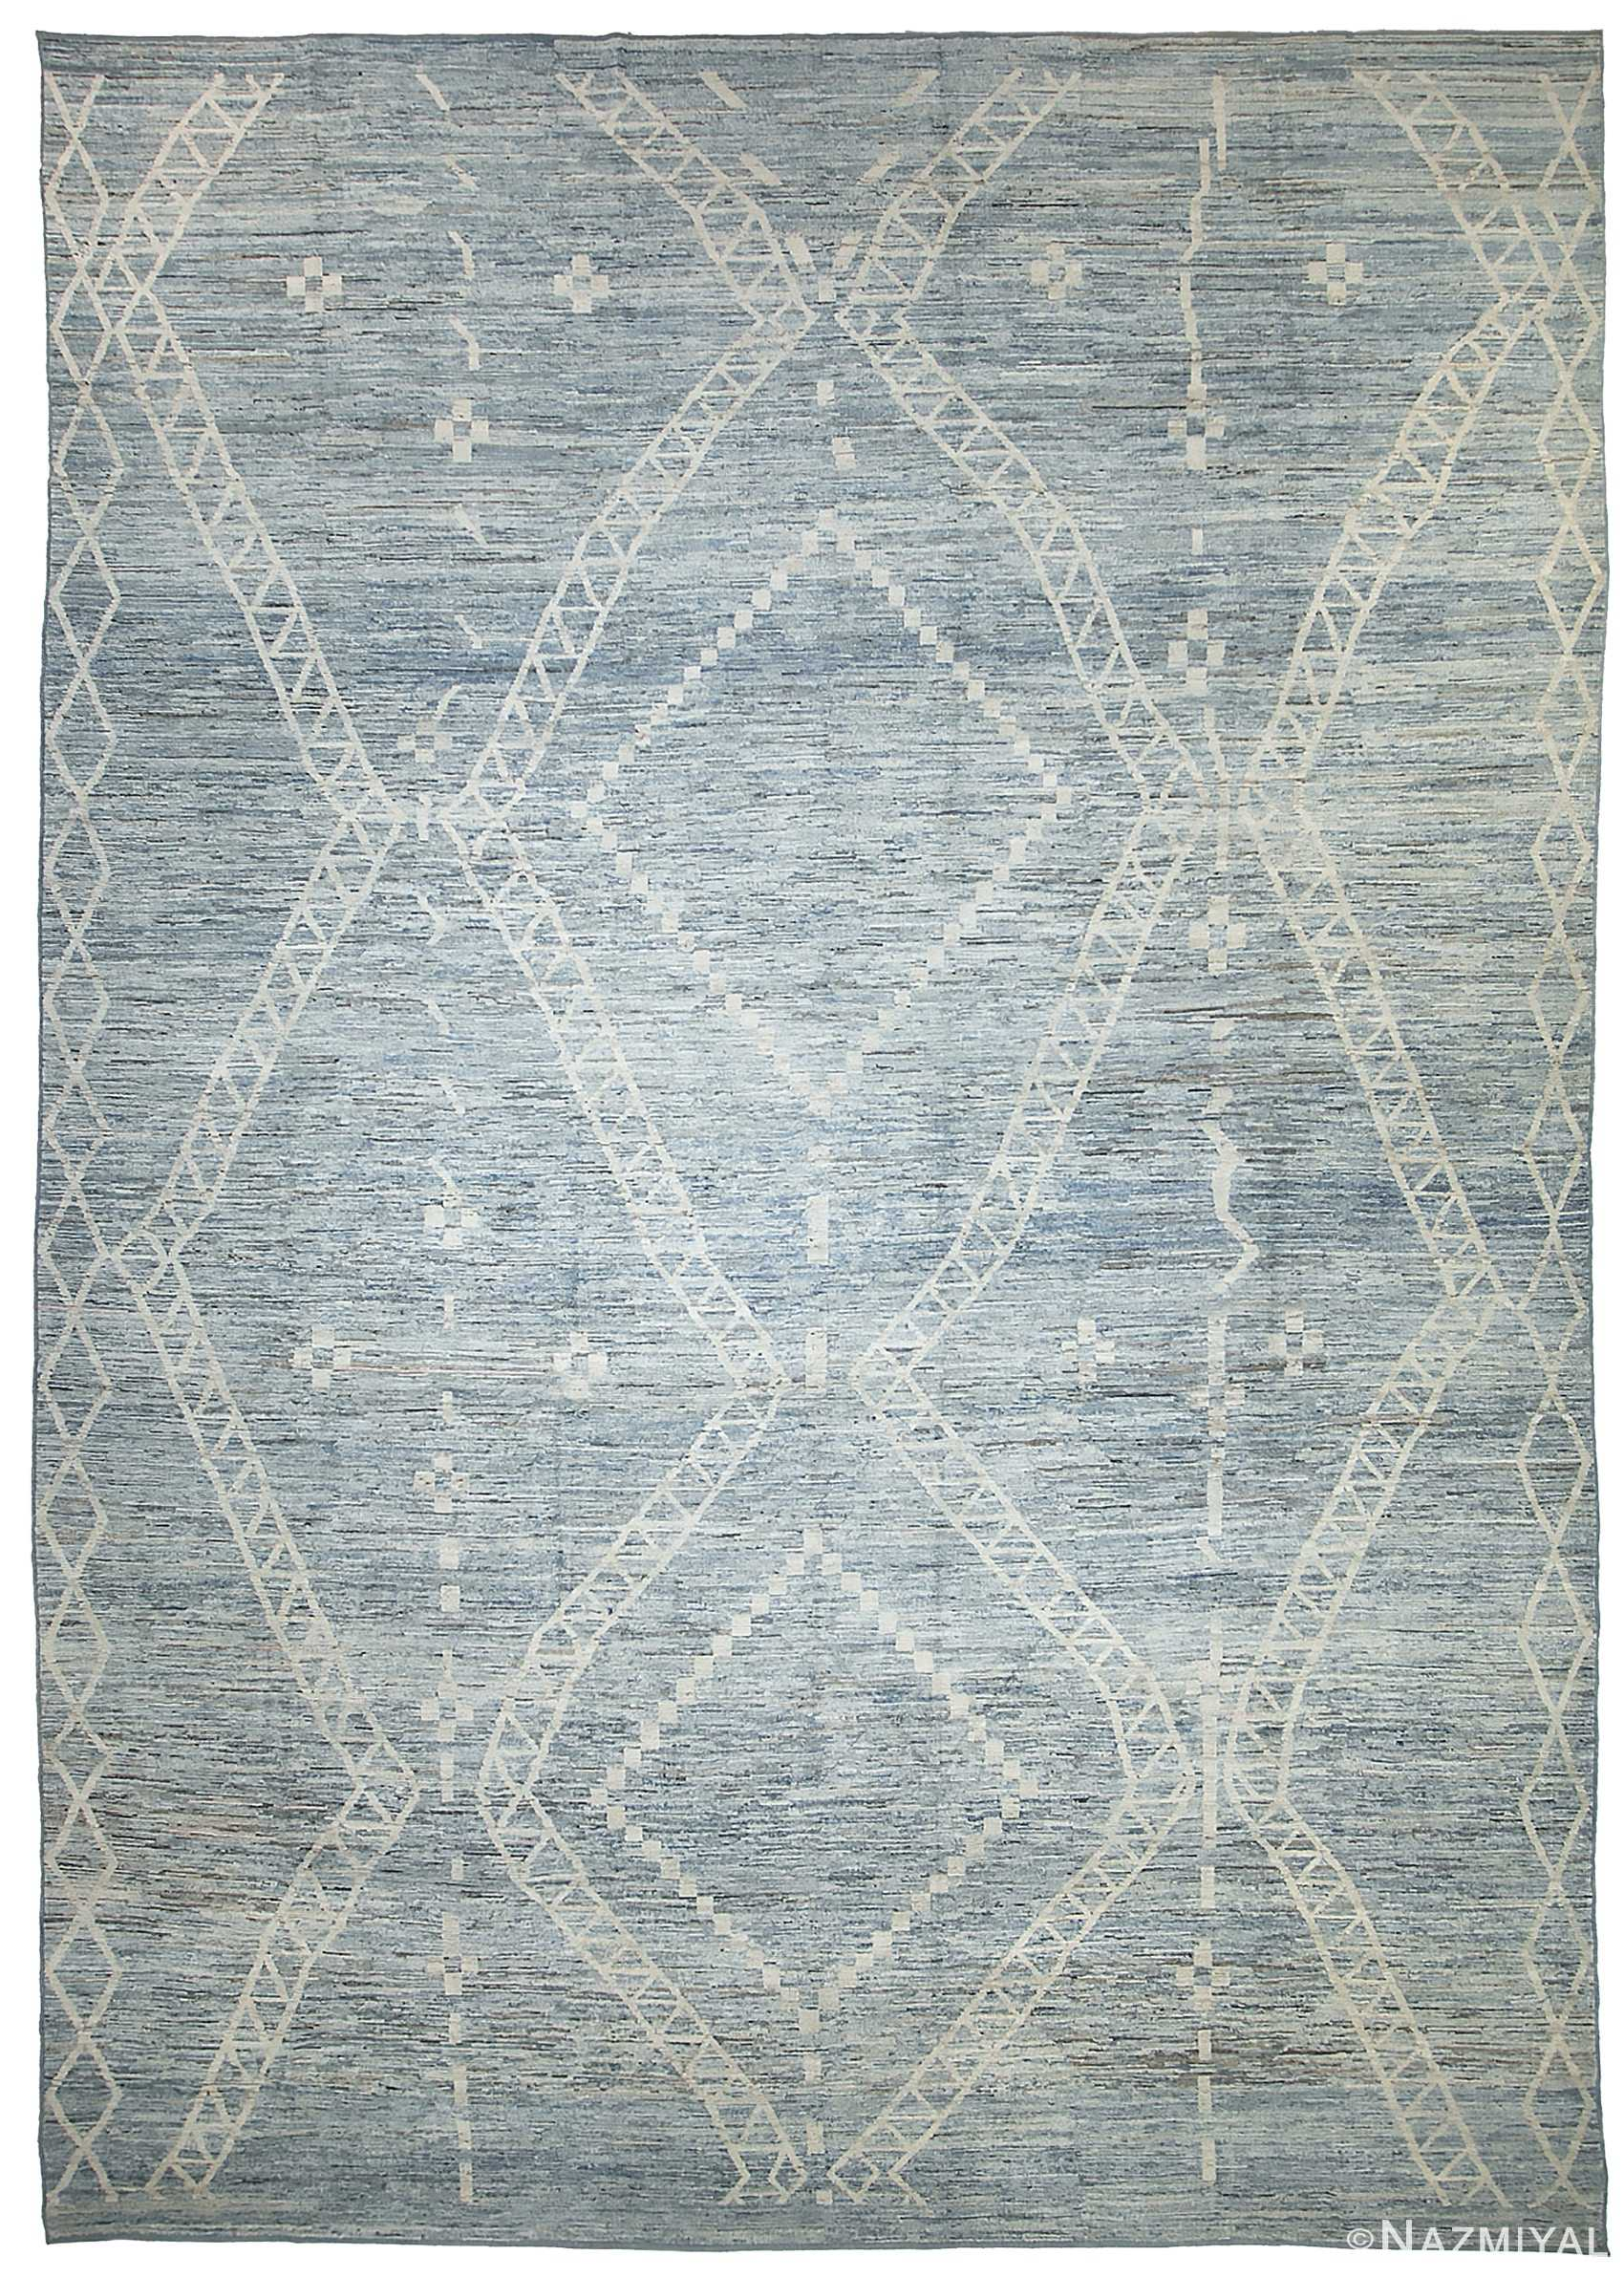 Large Blue Green Modern Moroccan Style